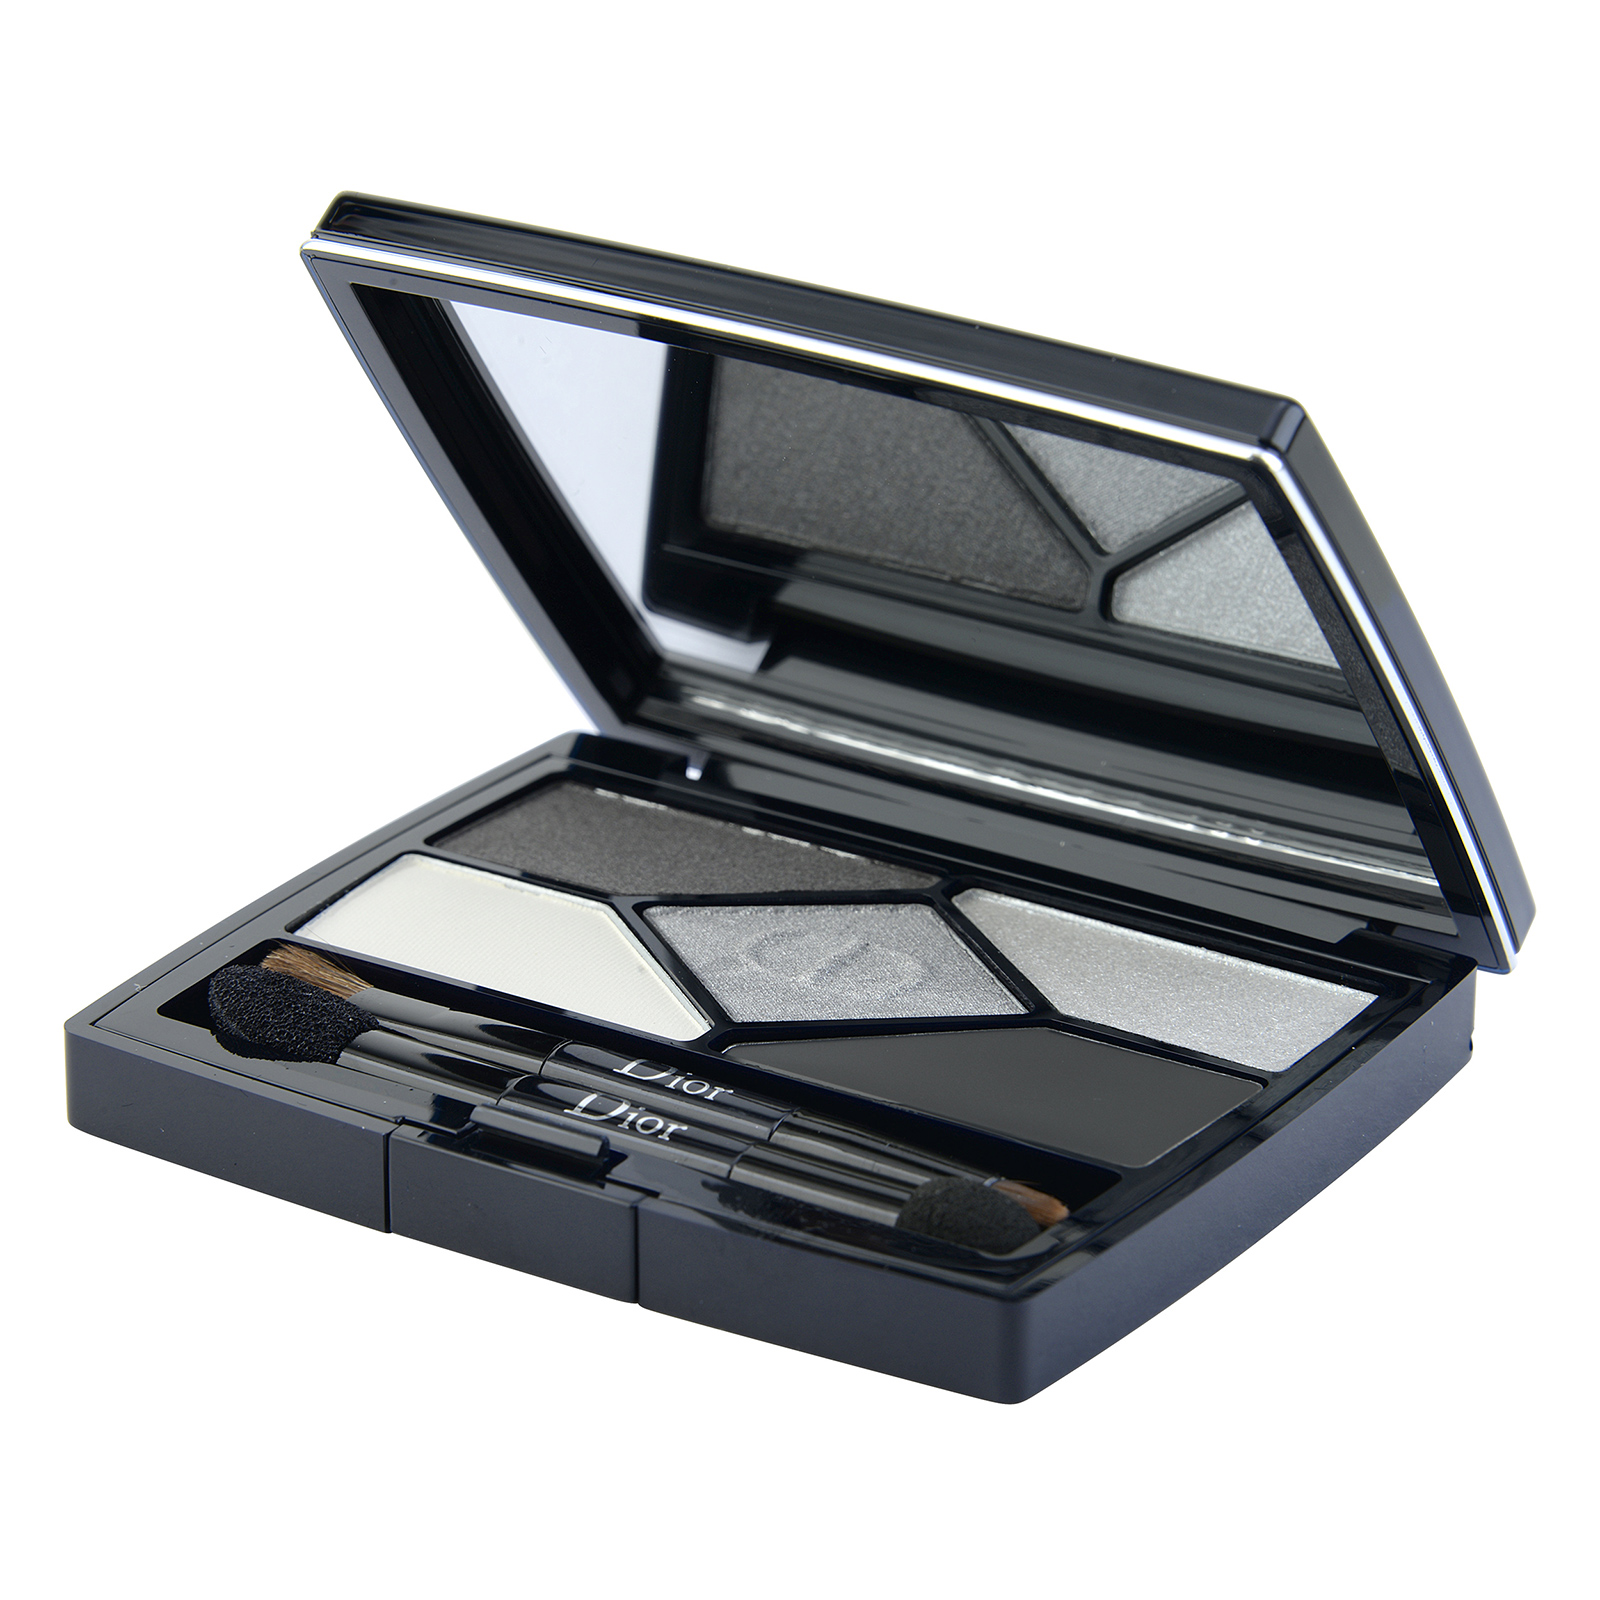 Christian Dior 5 Couleurs Designer  All-In-One Professional Eye Palette 008 Smoky Design, 0.2oz, 5.7g